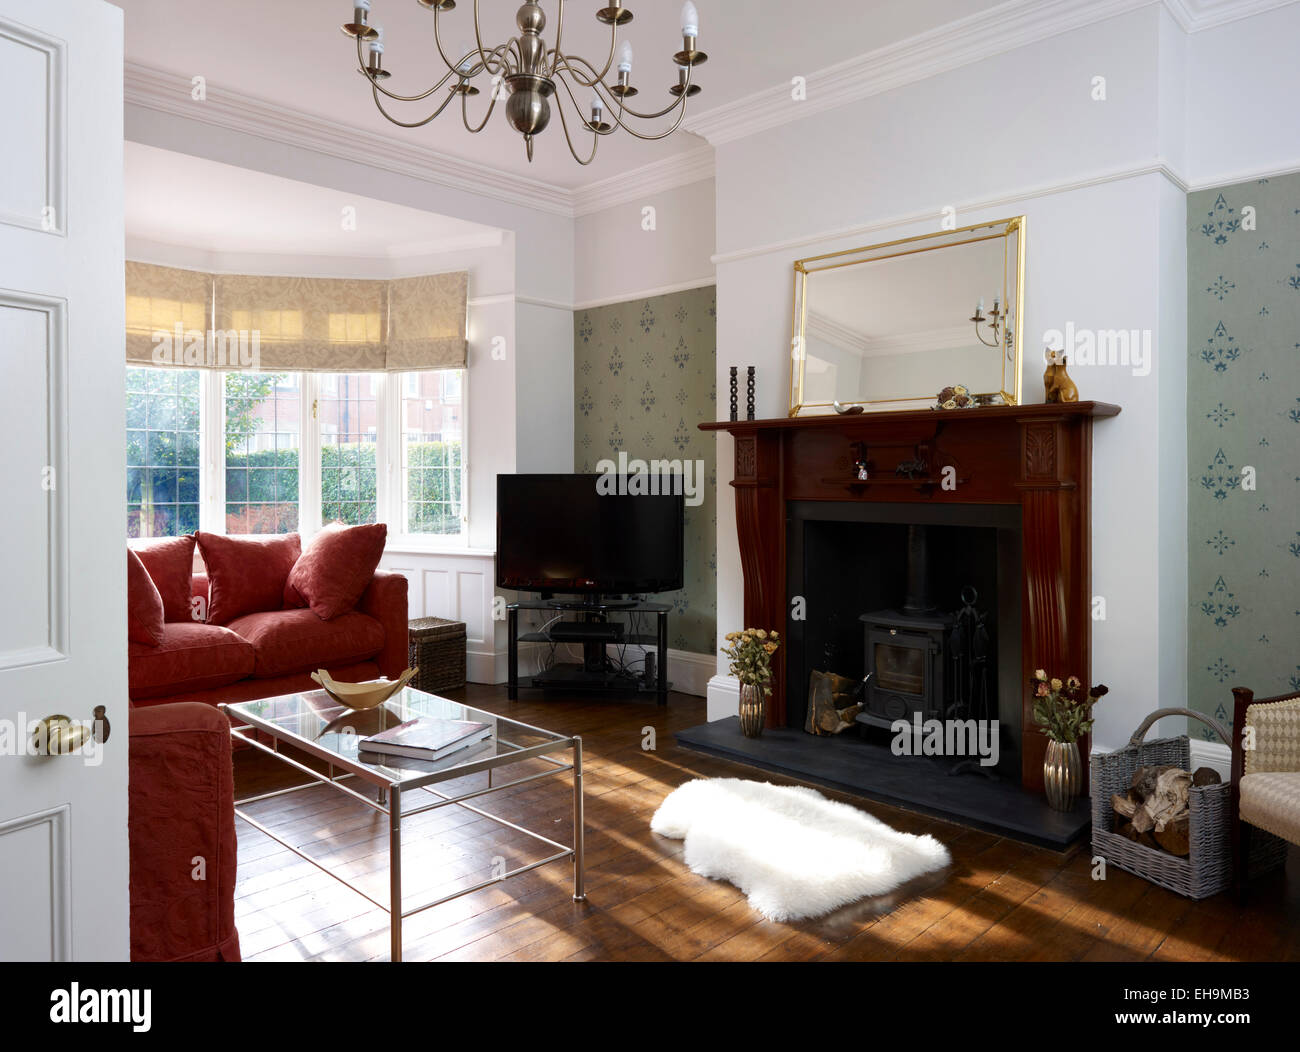 Sitting Room With Bay Window Chandelier And Wood Stove In Fireplace Residential House Kingsmead UK